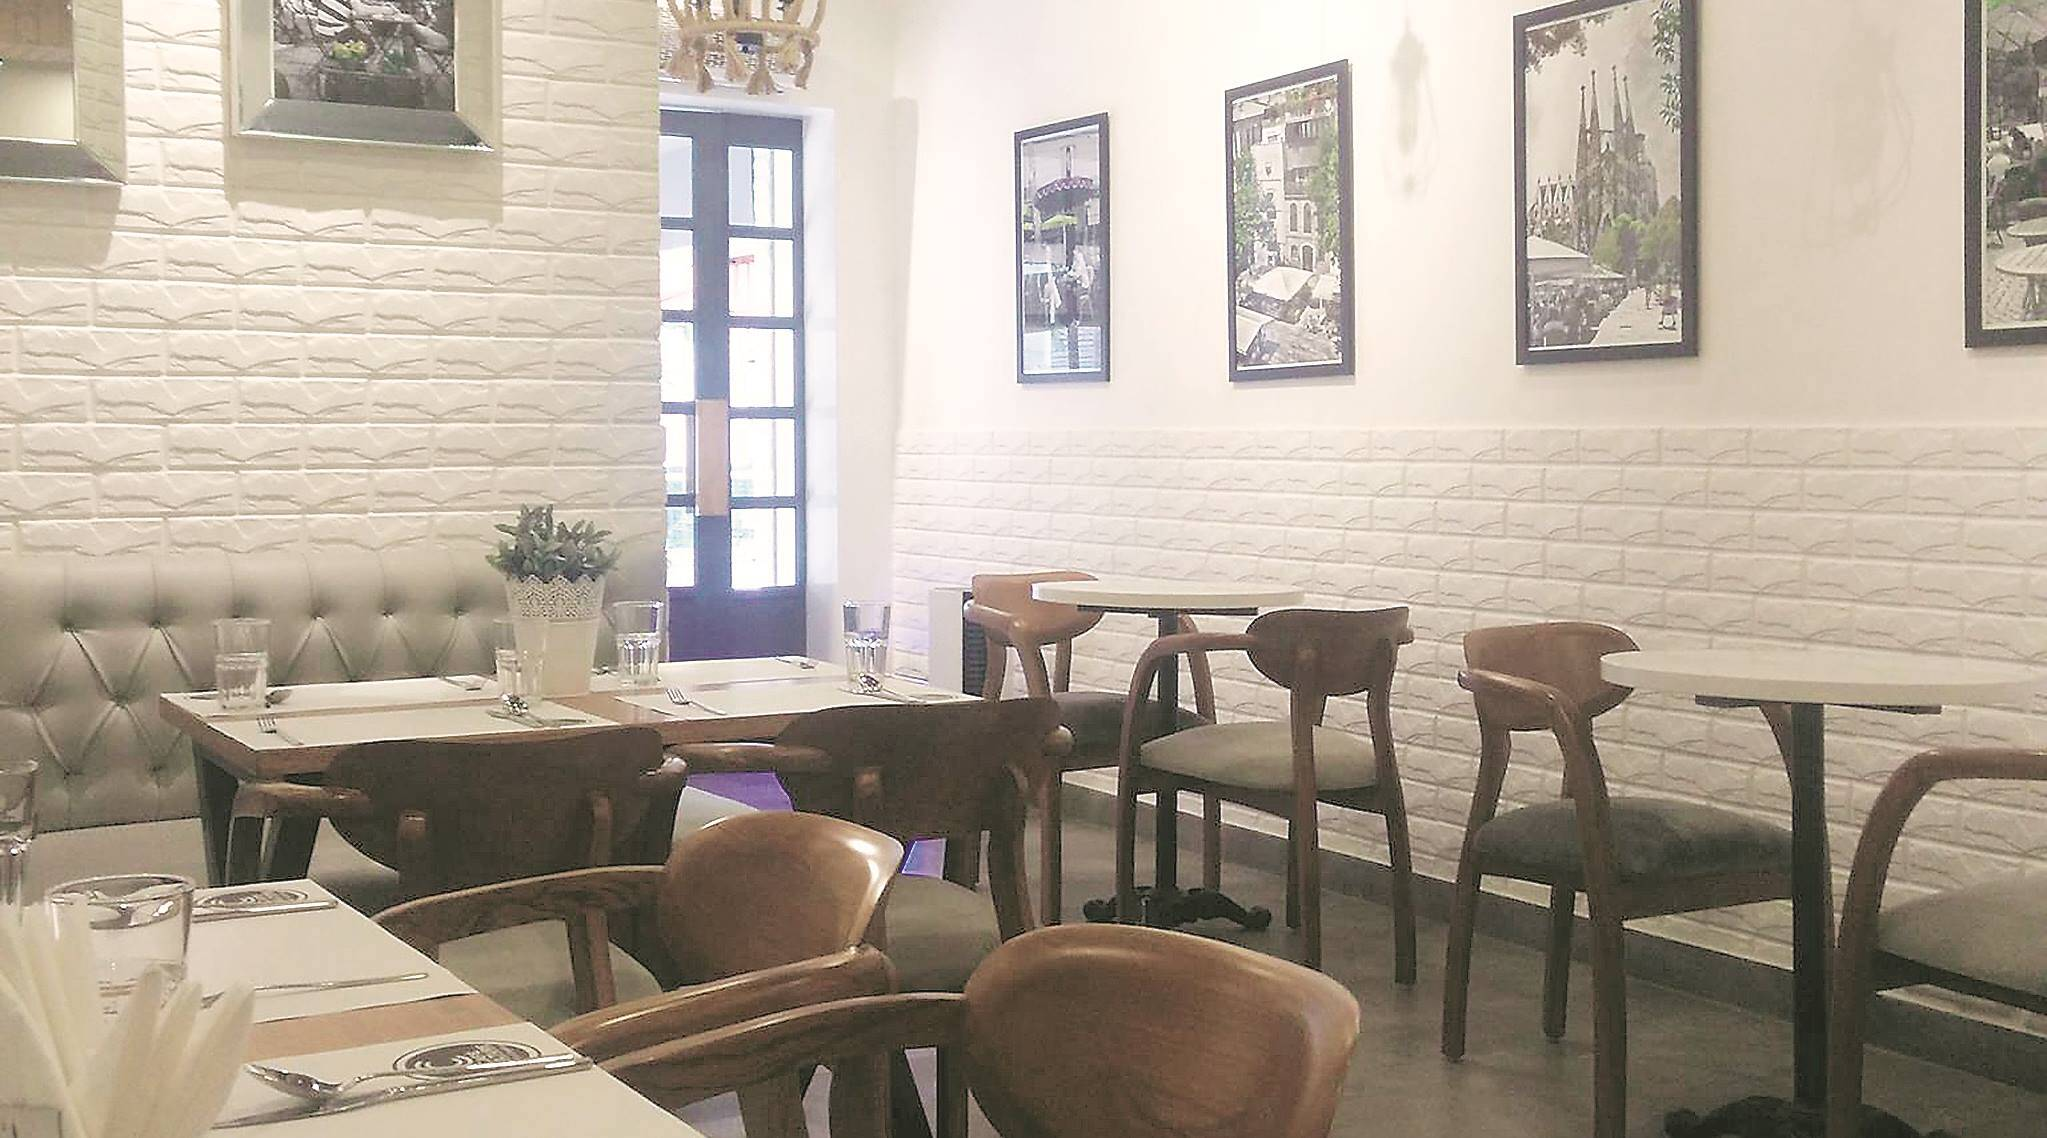 Cafe Culture, Head Chef Vipul Arora, New restaurants in Delhi, Food review latest, Food review cafe culture, Place to Eat near M Block market in GK1, Budget restaurants in delhi, Latest news, India news, national news